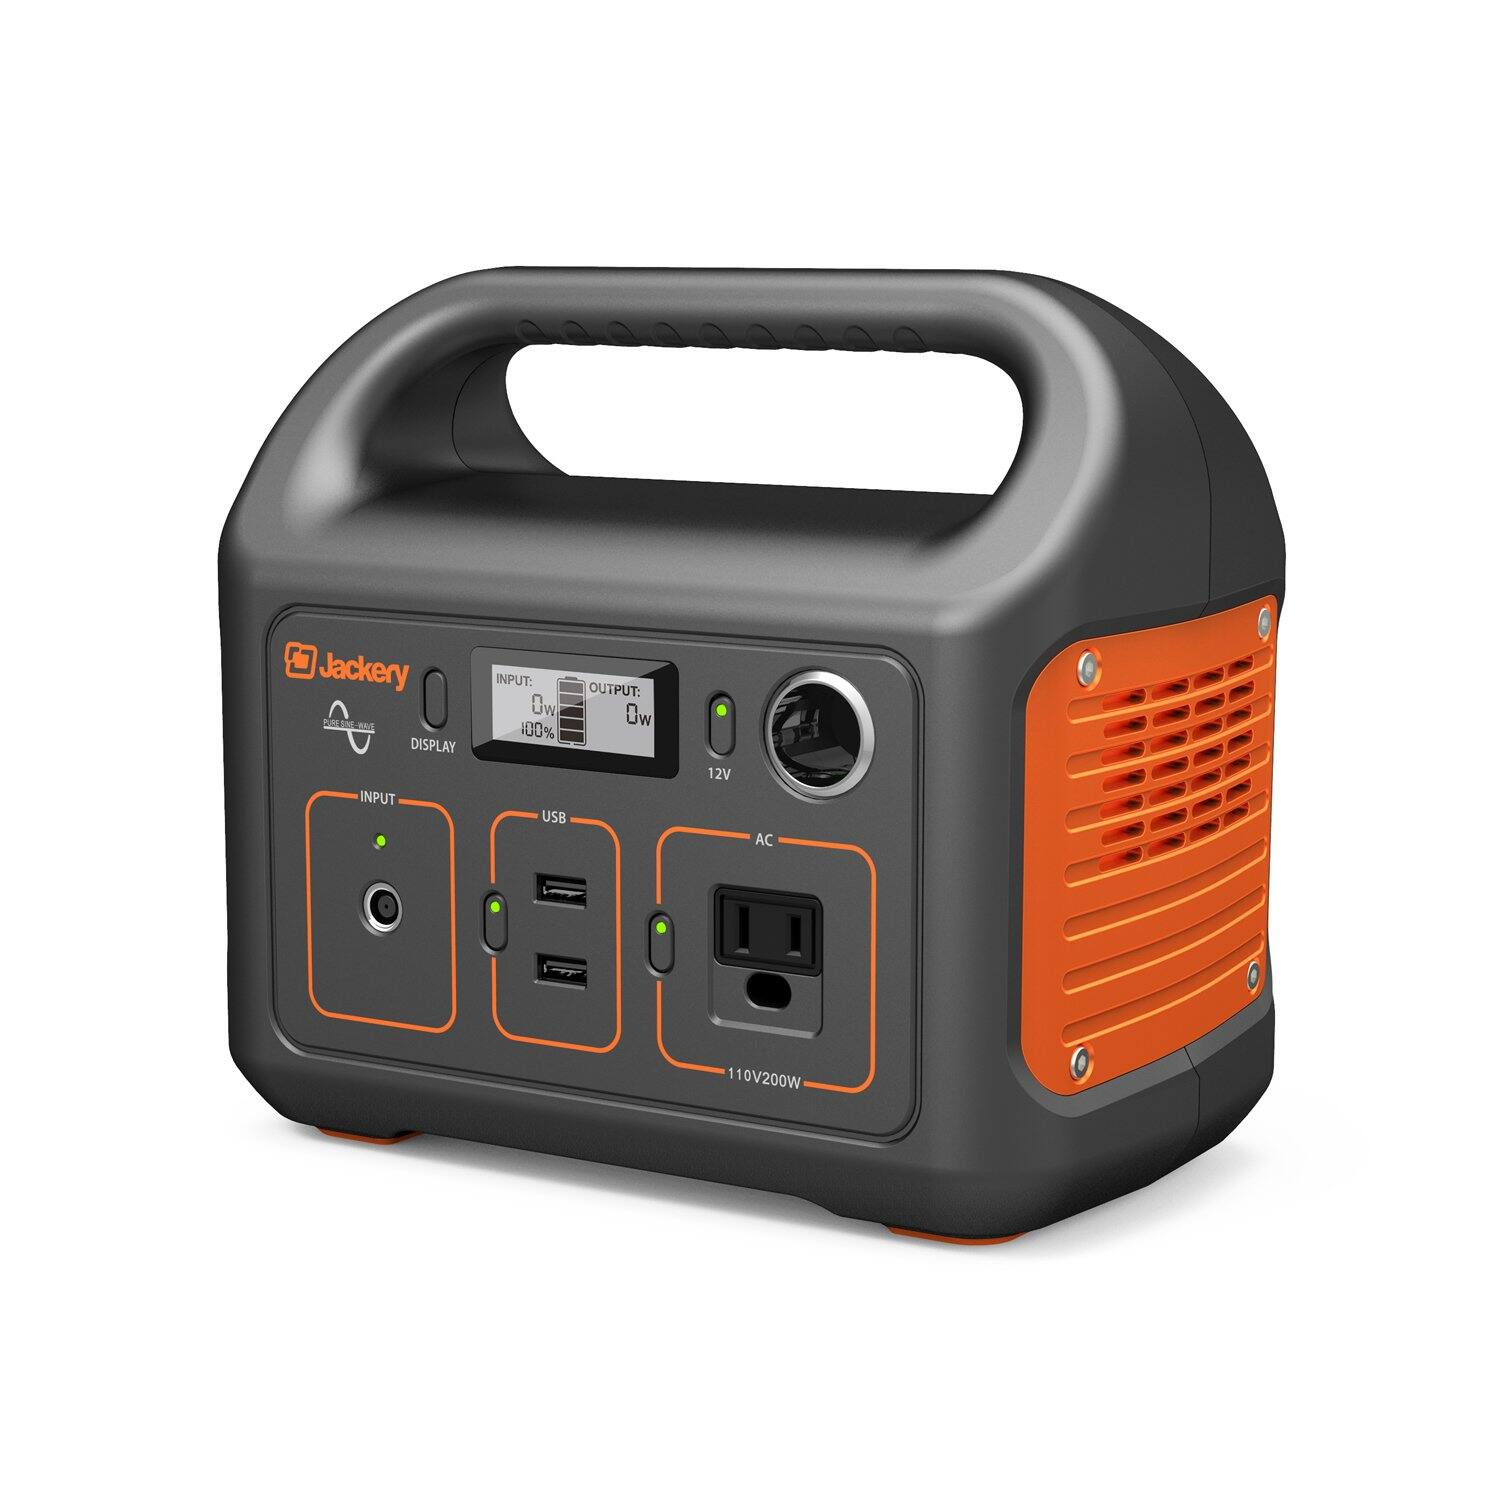 Jackery Portable Power Station Explorer 240, 240Wh Backup Lithium Battery, 110V/200W AC Outlet 25% Off and Donation Aprox: $187.50